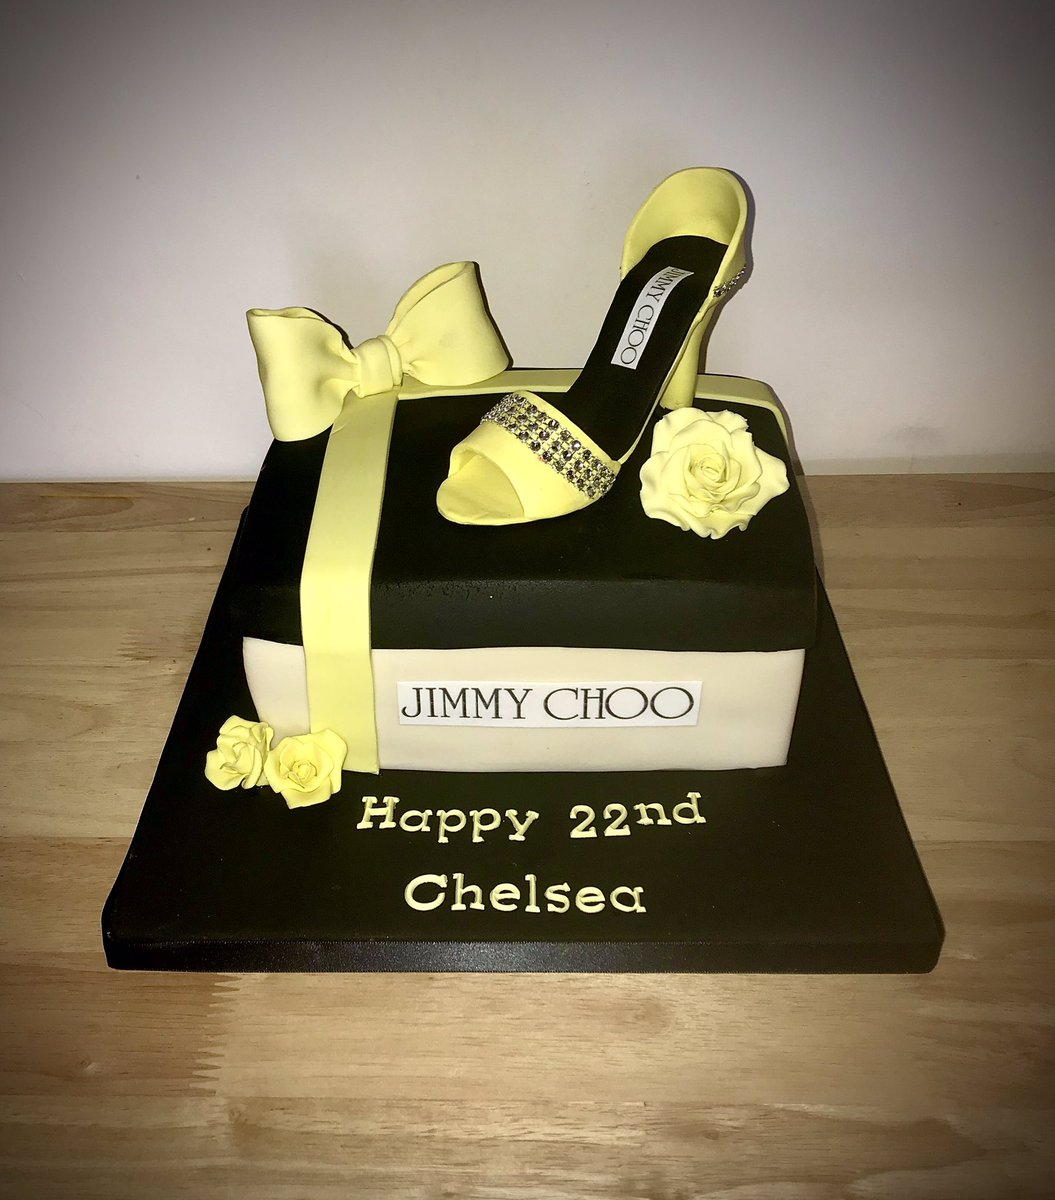 Another shoe cake order done, I'm buying a mould as it's gotta be easier than freehand, we'll it's the closest I'll ever get to Jimmy Choo shoes  (Not my design, what customer asked for)  #cakes #baking #jimmychoo pic.twitter.com/VGgjfhPvN1